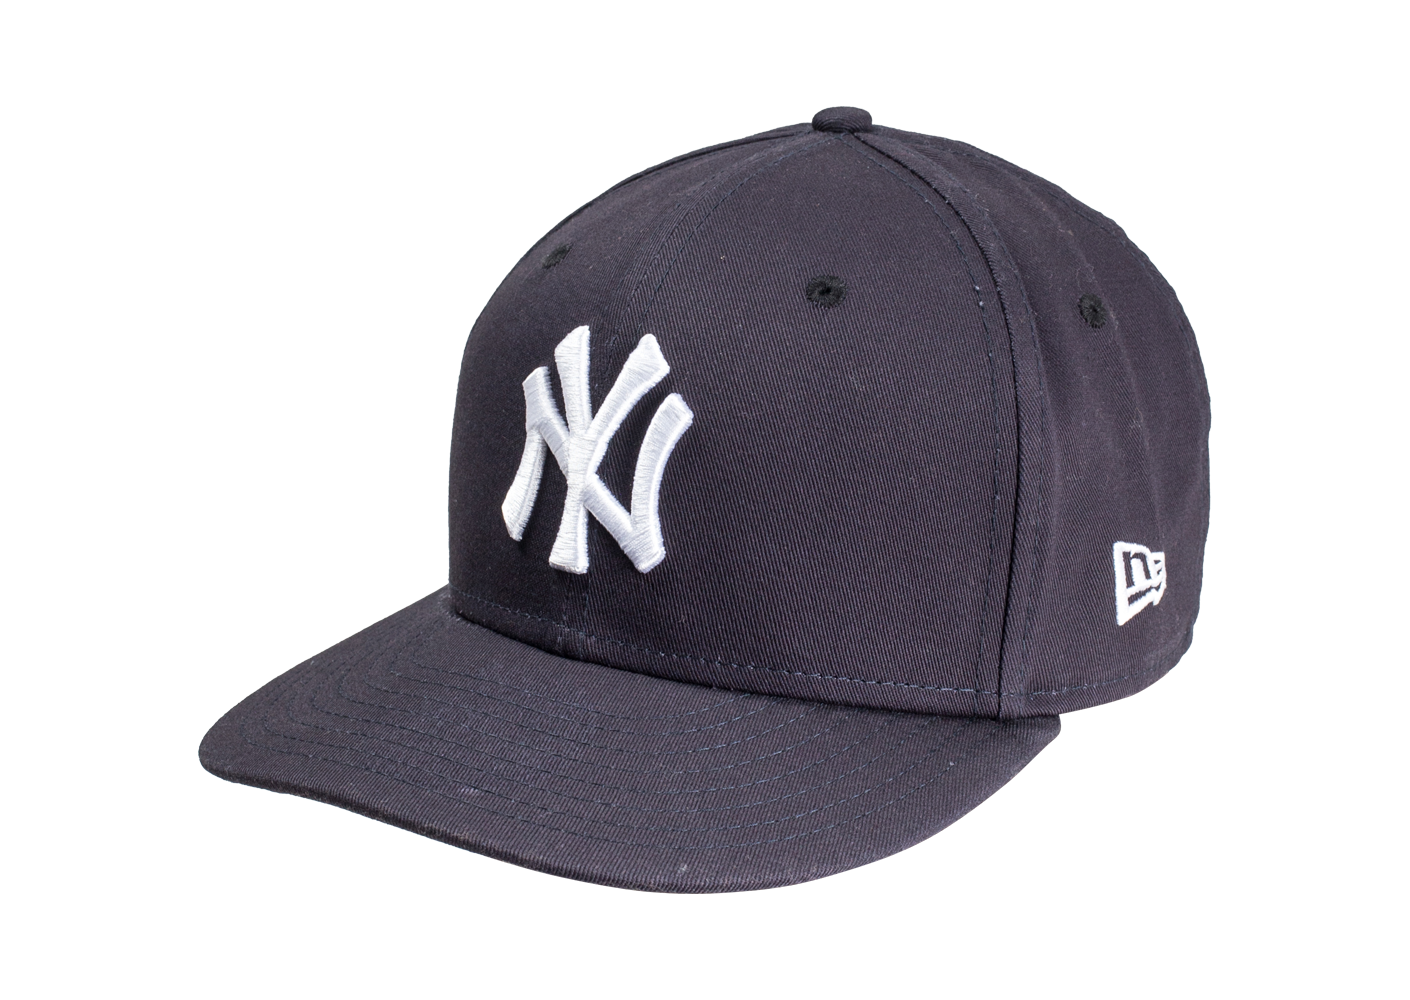 New Era Homme Casquette 9/50 League Ny Bleue